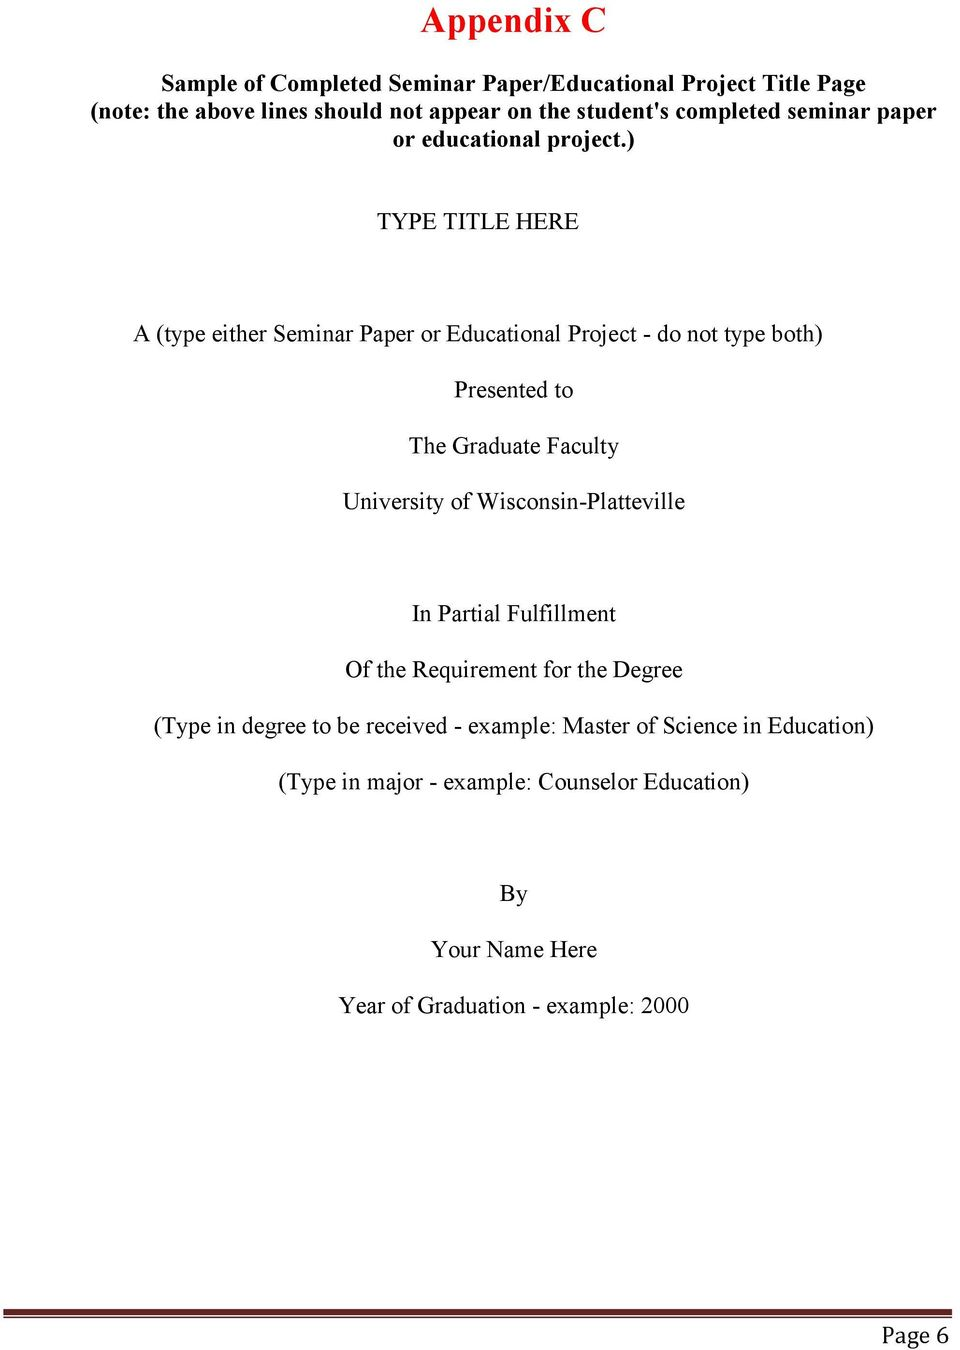 A (type either Seminar Paper r Educatinal Prject - d nt type bth) Presented t The Graduate Faculty University f Wiscnsin-Platteville.